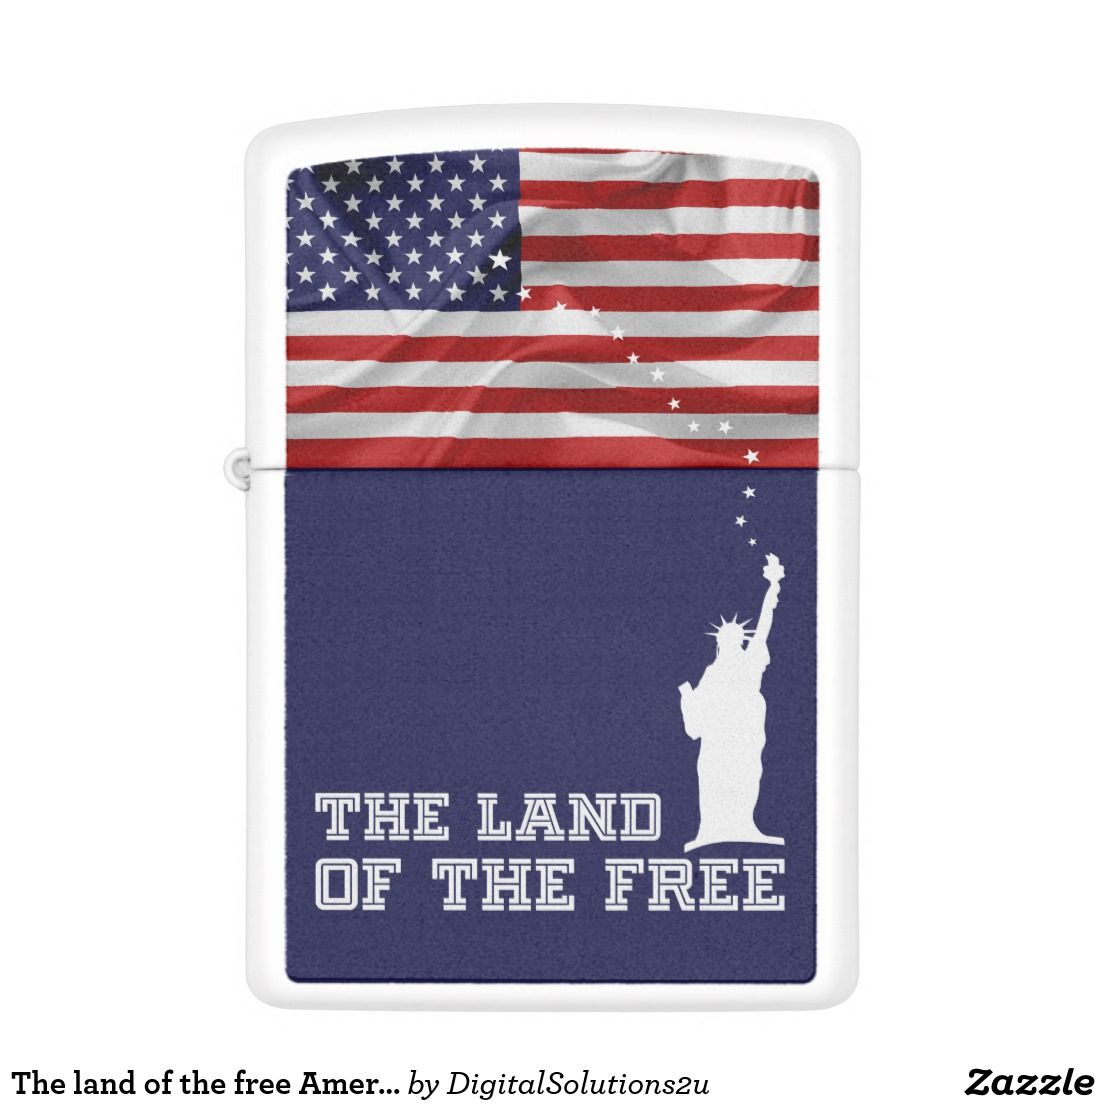 The Land Of The Free American Patriot Zippo Lighter Zazzle Com Zippo Lighter Zippo Pocket Light